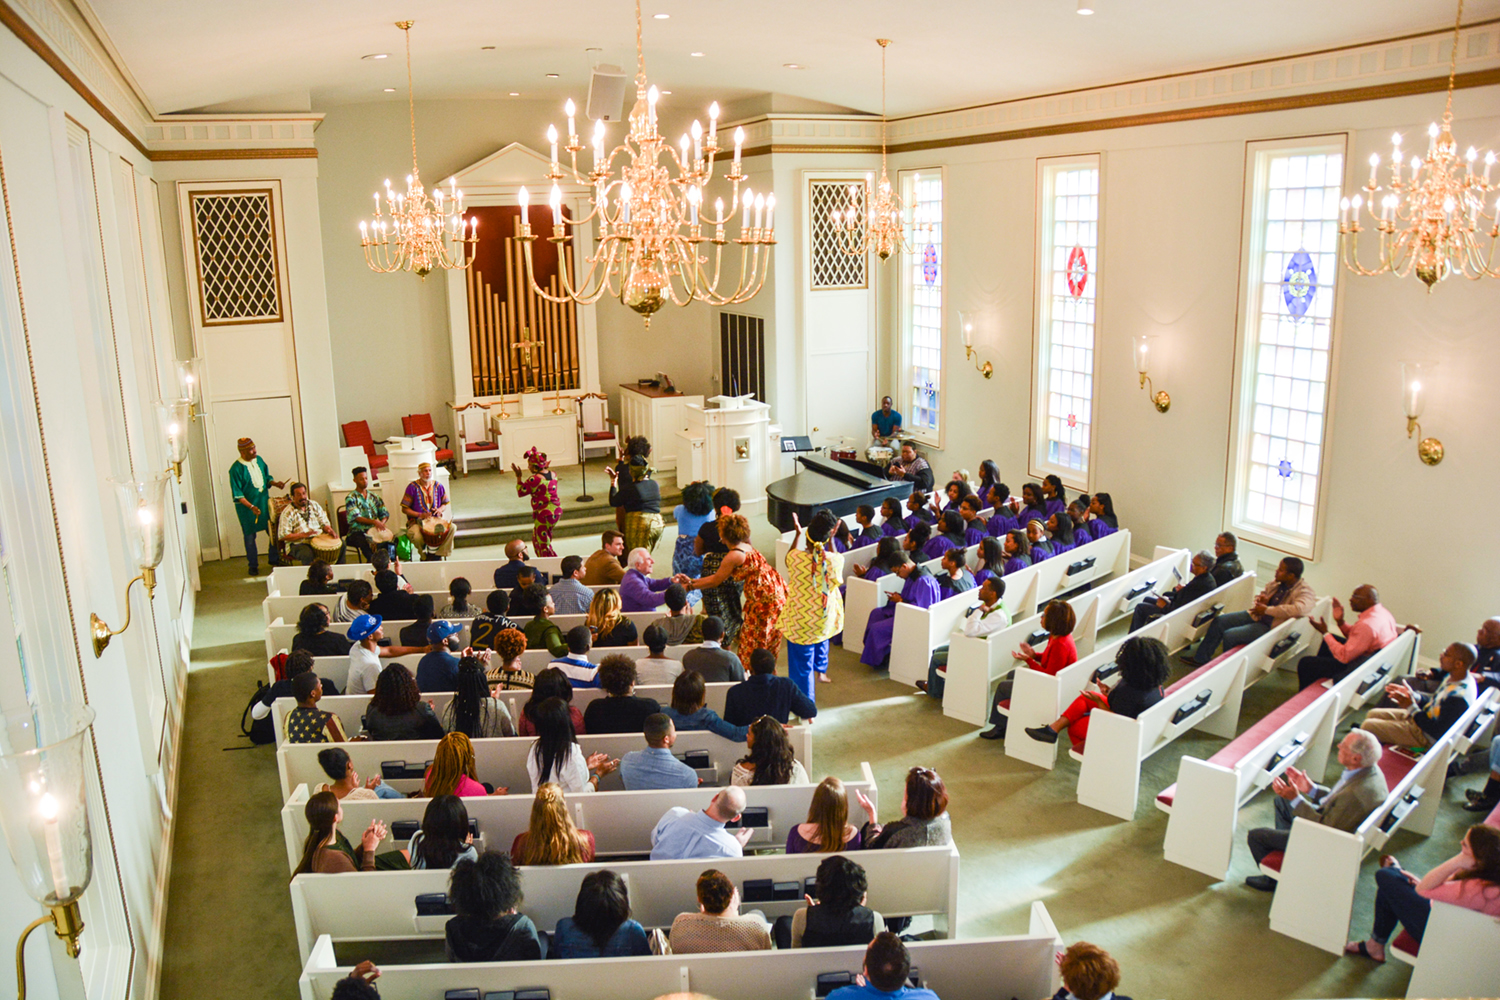 Students and community members gathered together in the Hayworth Chapel for the third annual Black Heritage Service.